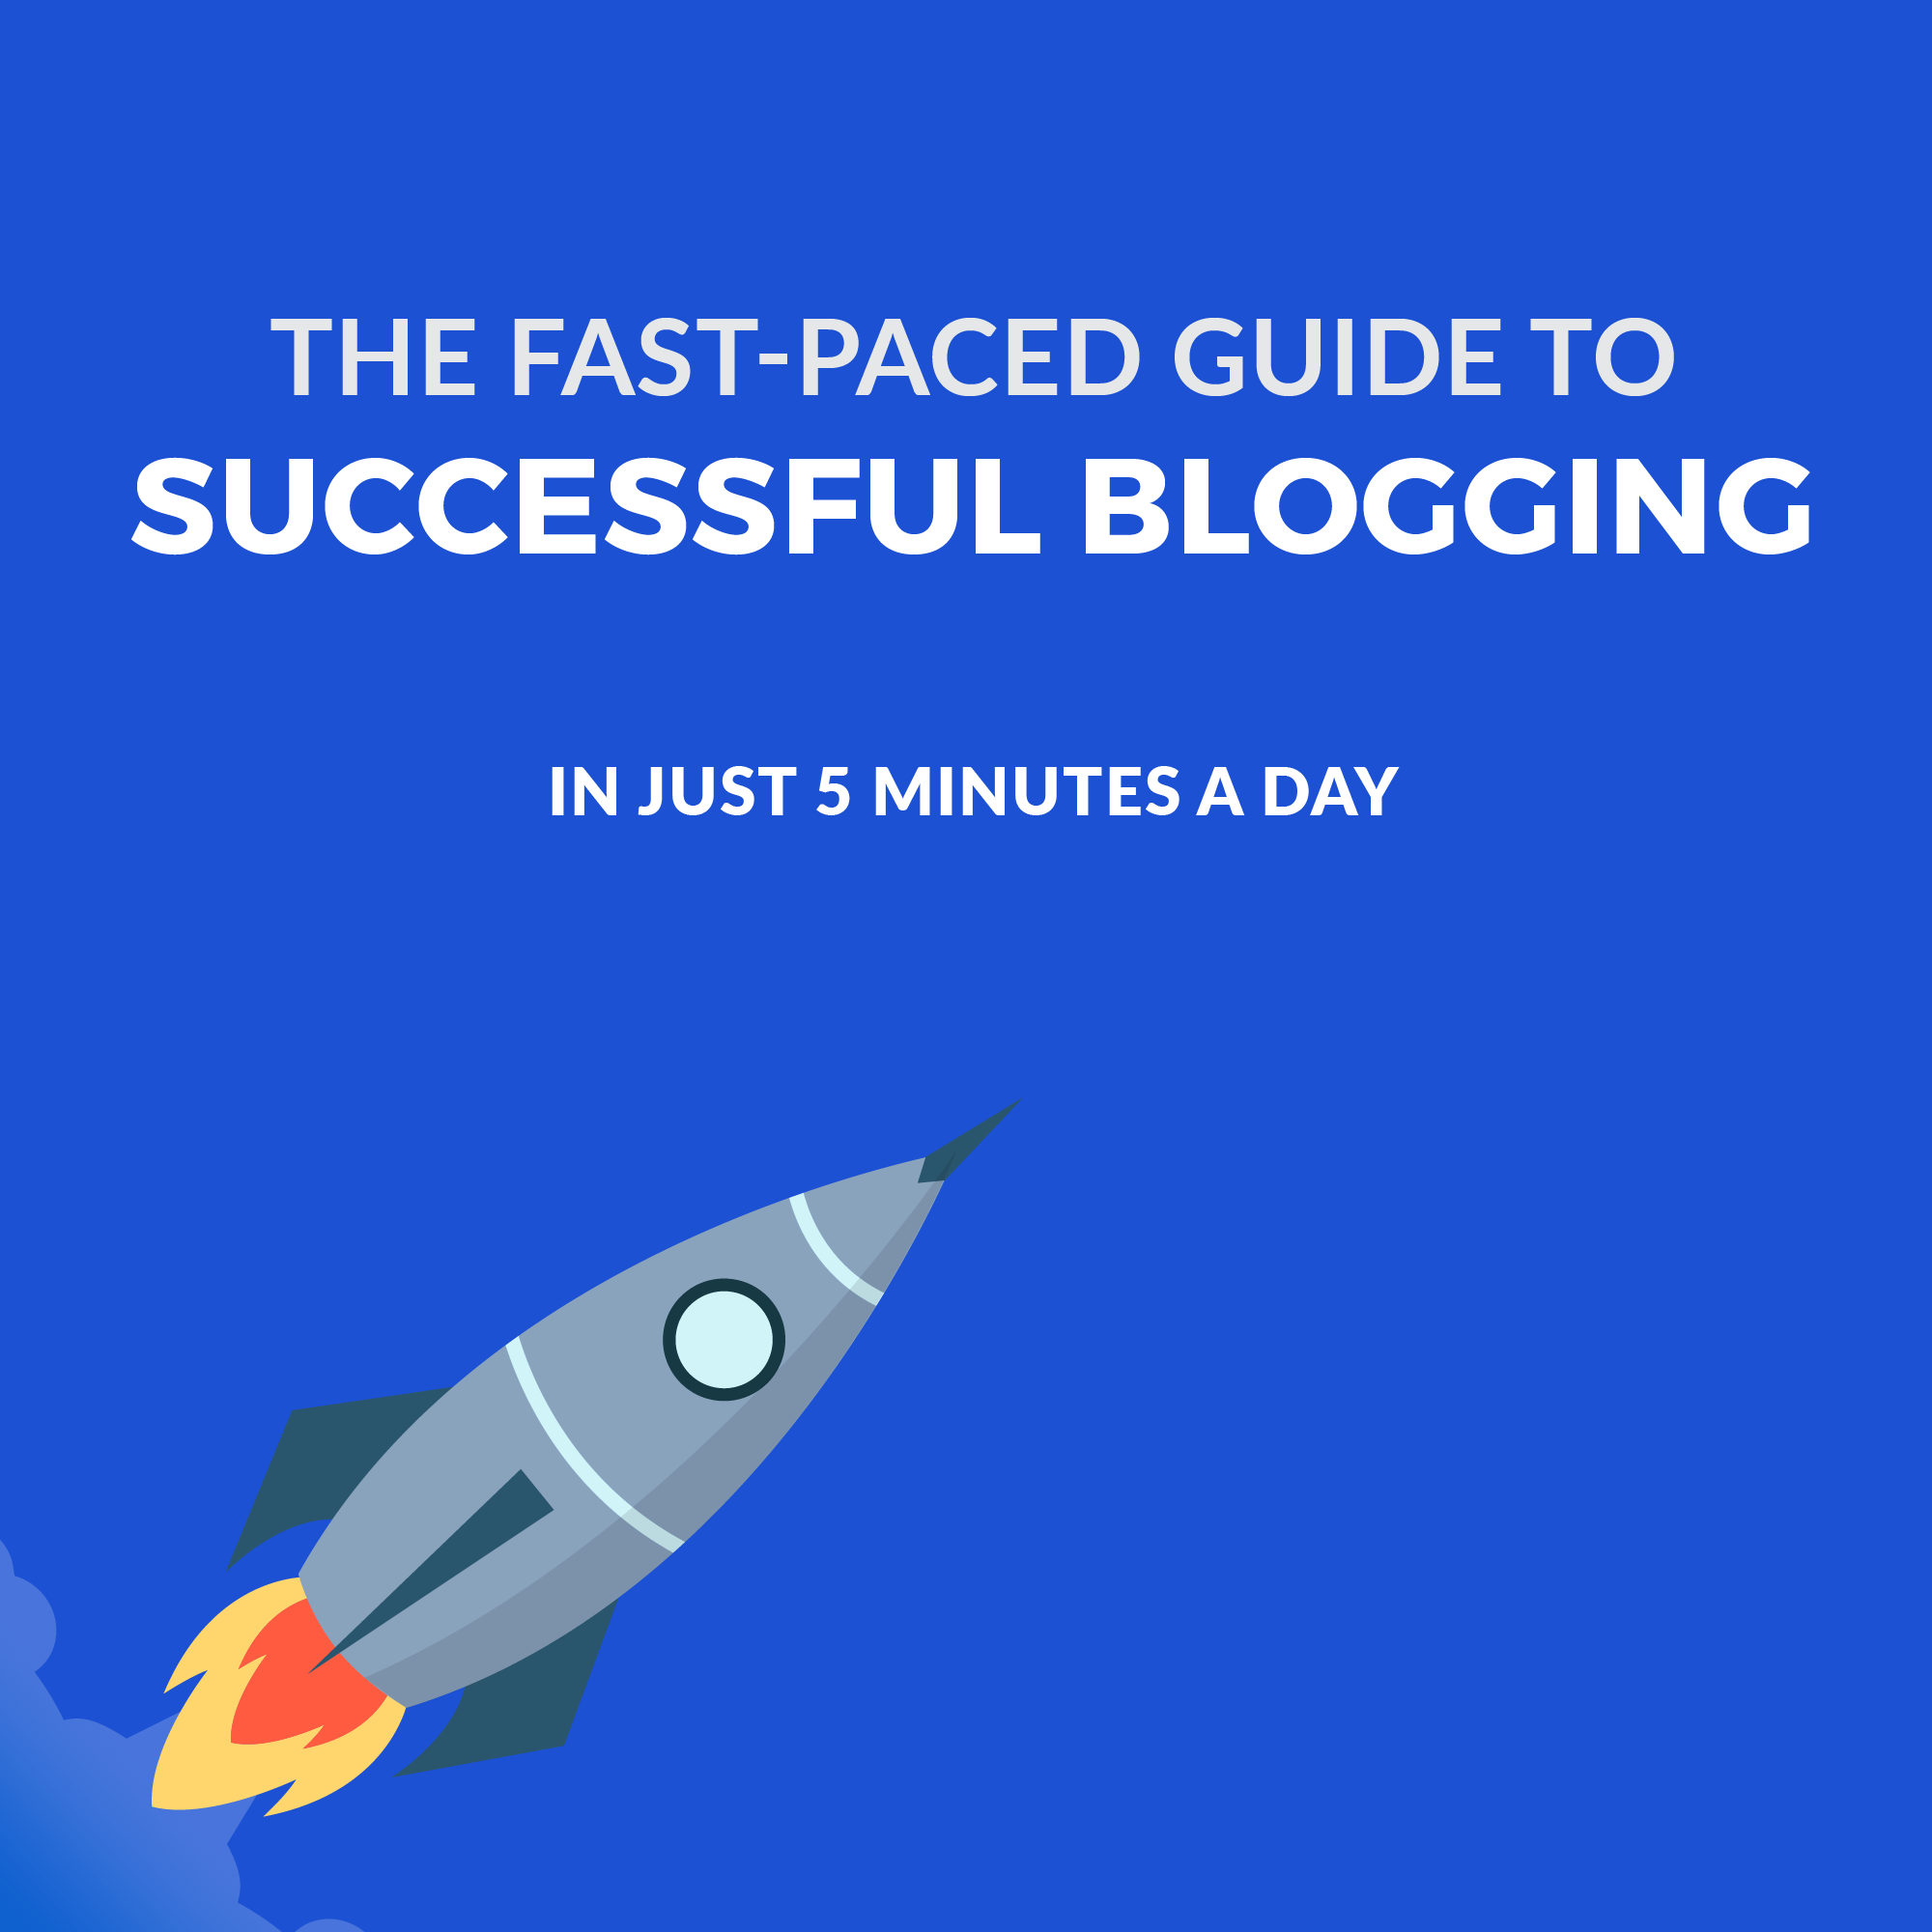 Successful Blogging In Just 5 Minutes a Day